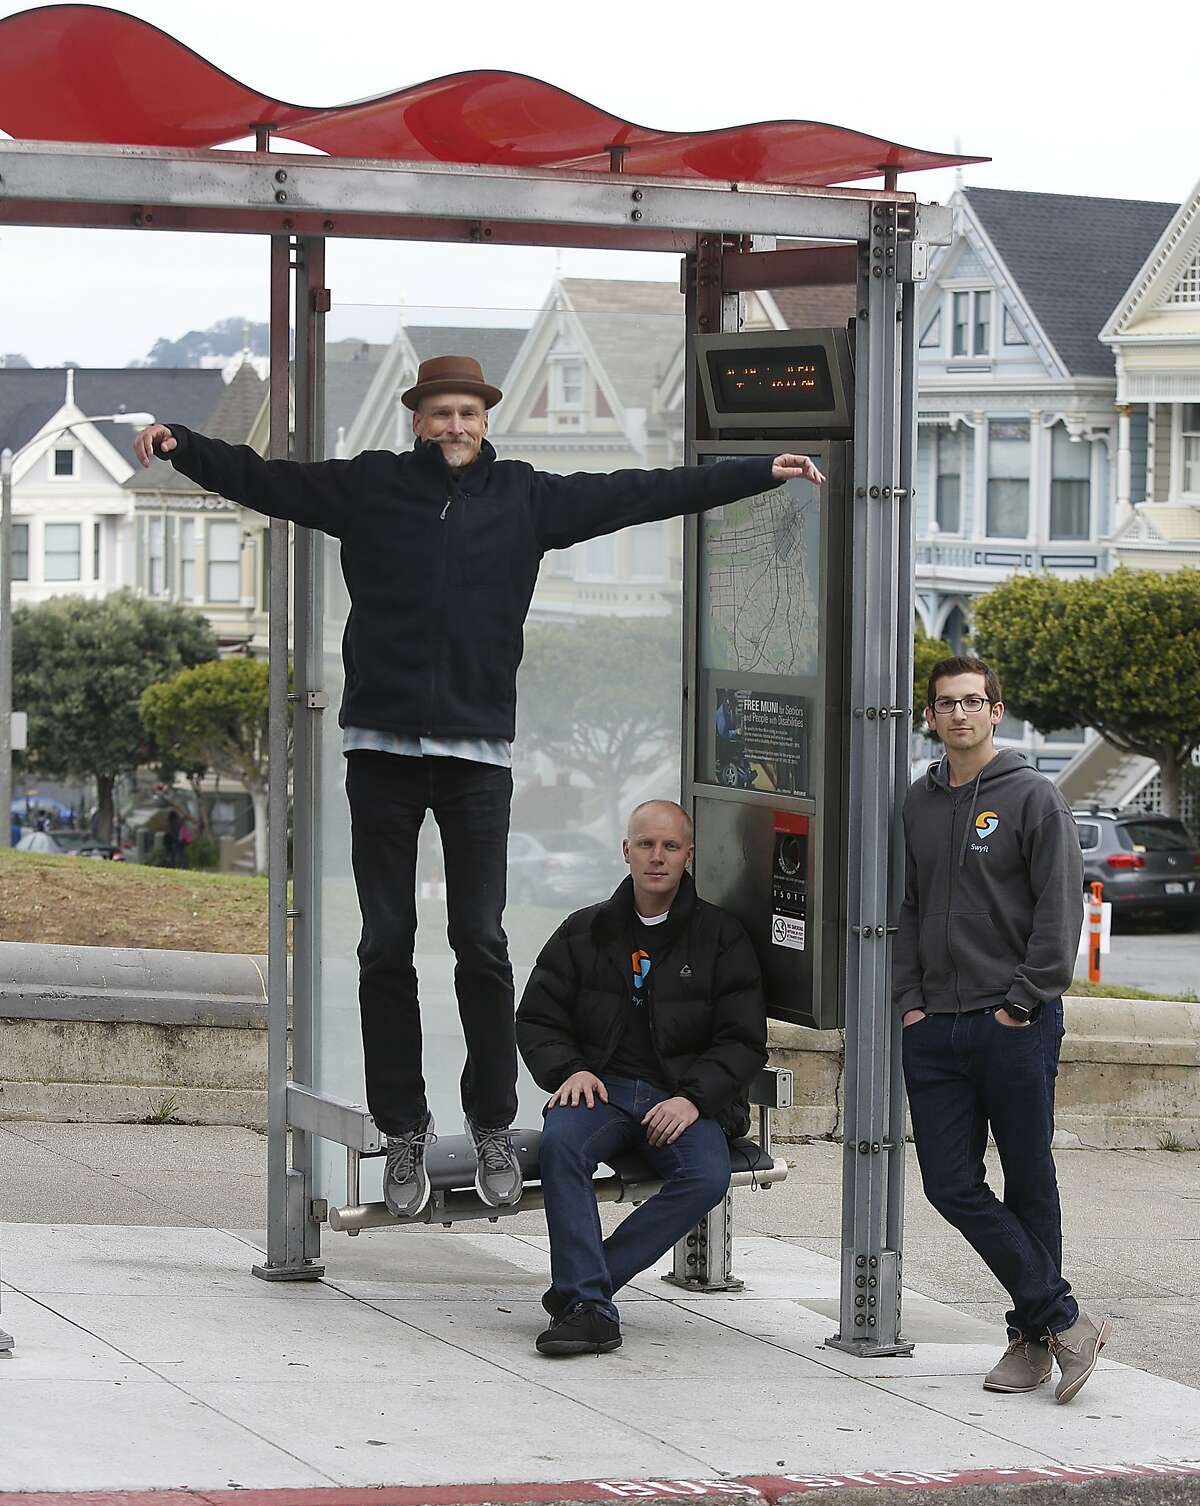 Swyft co-founders Michael Smith (left), Will Dayton (middle), and Jonny Simkin (right) at the bus stop next to Alamo park on Hayes St. in San Francisco, California, on Wednesday, December 2, 2015.